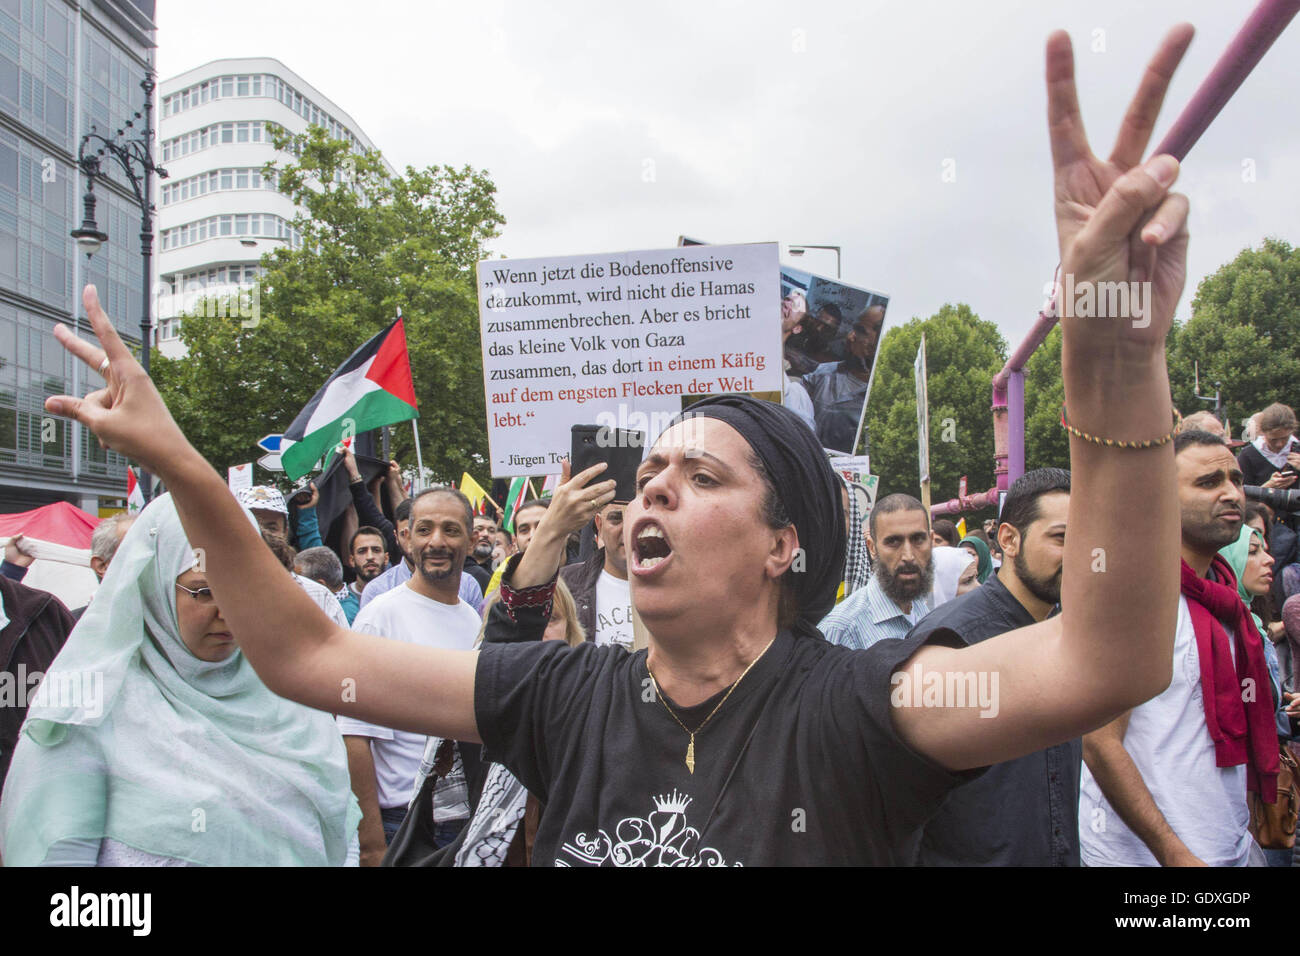 Al-Quds Demonstration in Berlin, Germany, 2014 - Stock Image